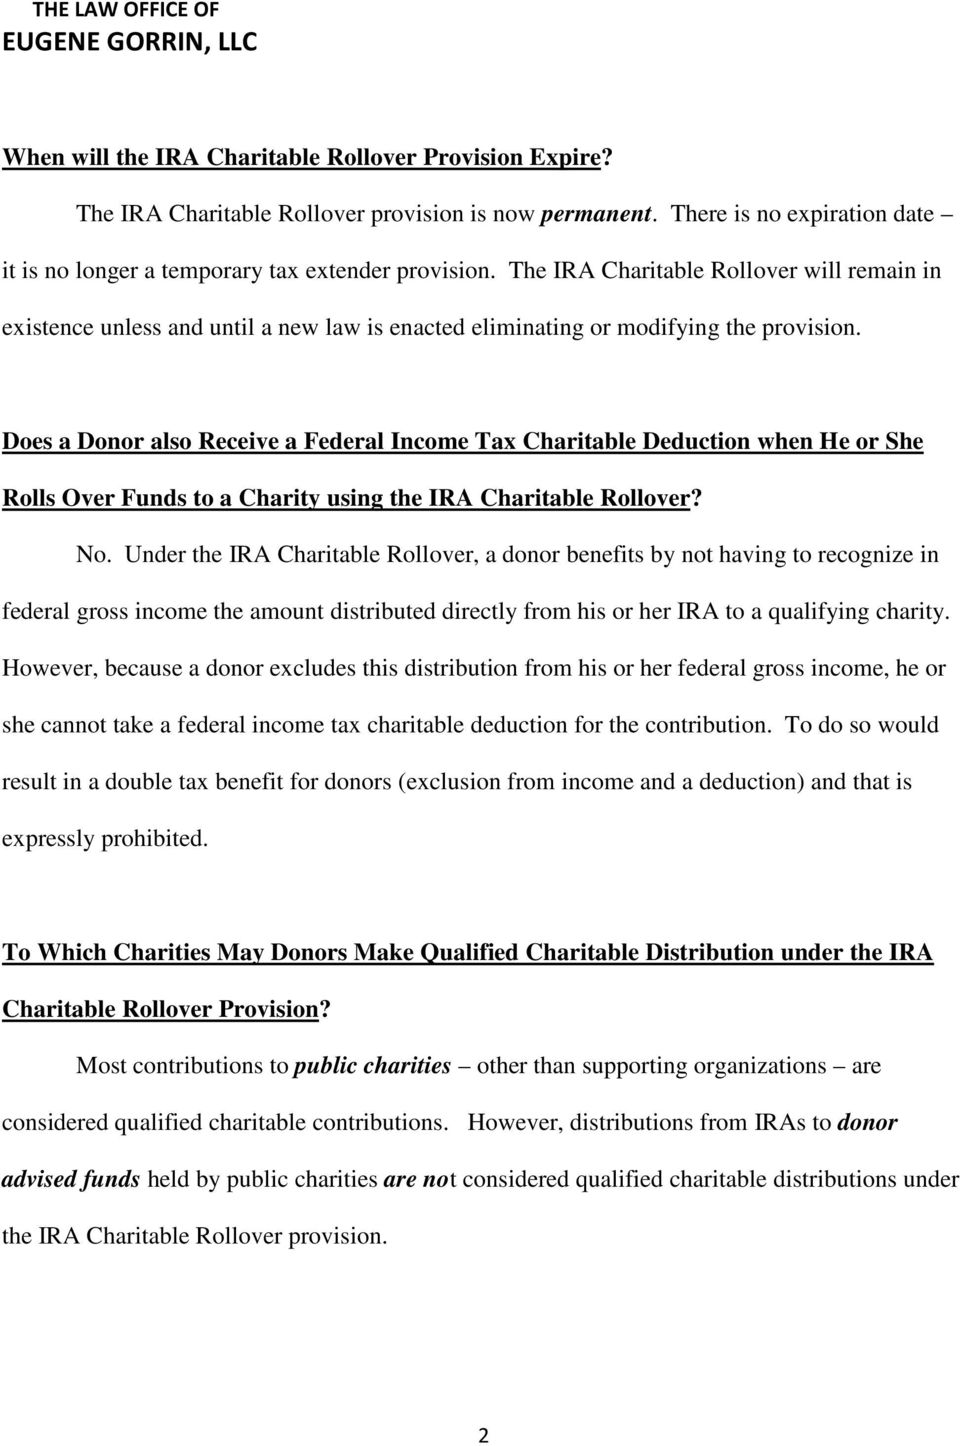 Does a Donor also Receive a Federal Income Tax Charitable Deduction when He or She Rolls Over Funds to a Charity using the IRA Charitable Rollover? No.